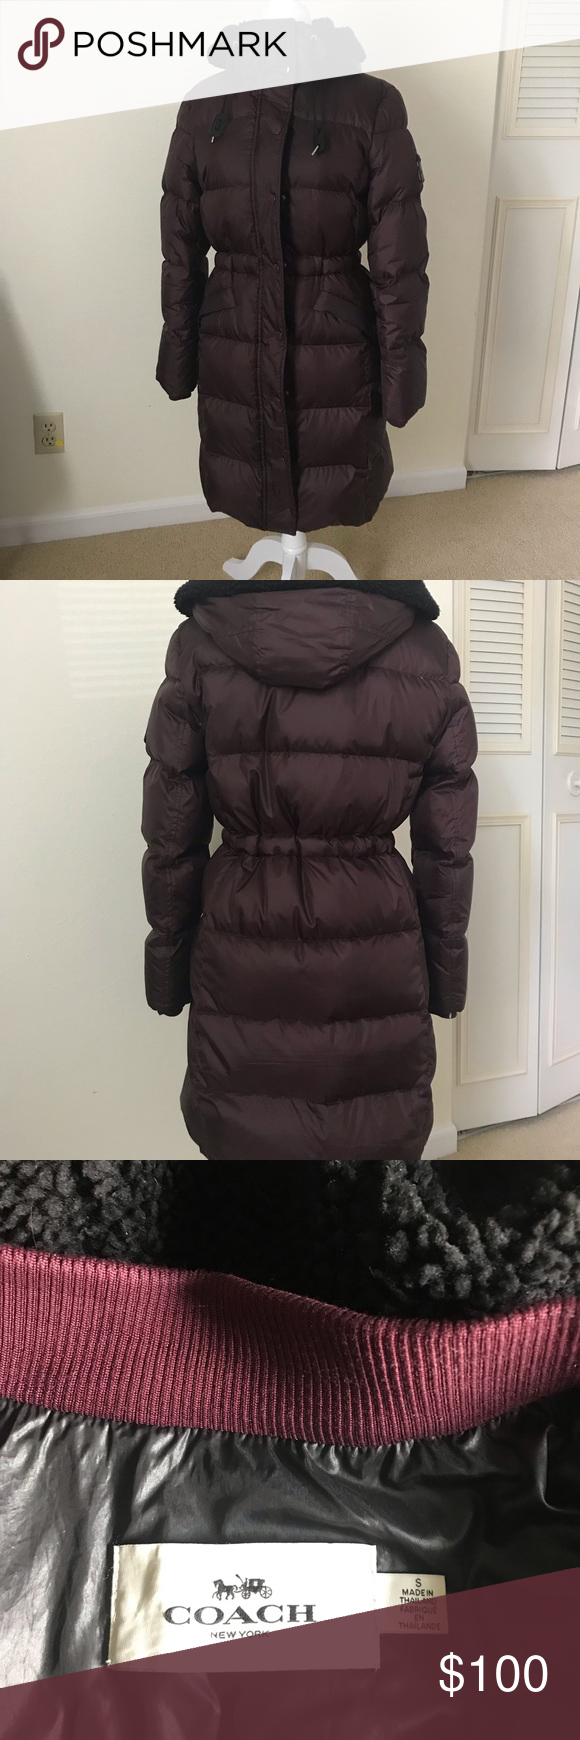 Coach Puffer Long Maroon Down Puffer Coat By Coach Full Zip Hooded And Has Inner Draw Strings To Cinch Waist Down Puffer Coat Puffer Coat Clothes Design [ 1740 x 580 Pixel ]